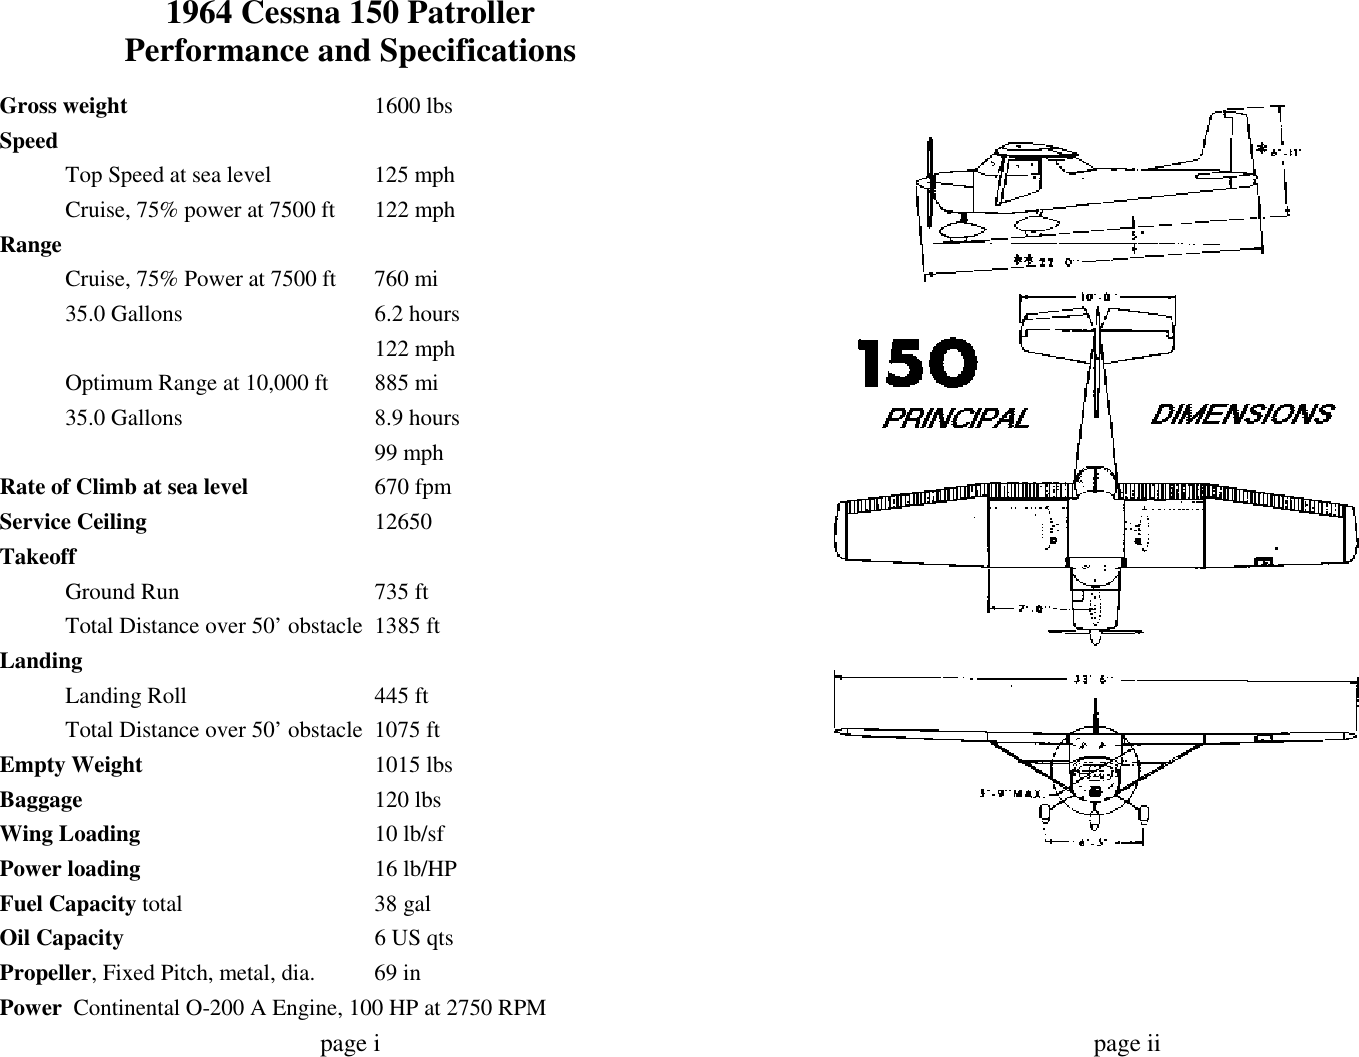 1964 Cessna 150 Patroller C150d Owners Manual Retyped 152 Navigation Light Wiring Diagram